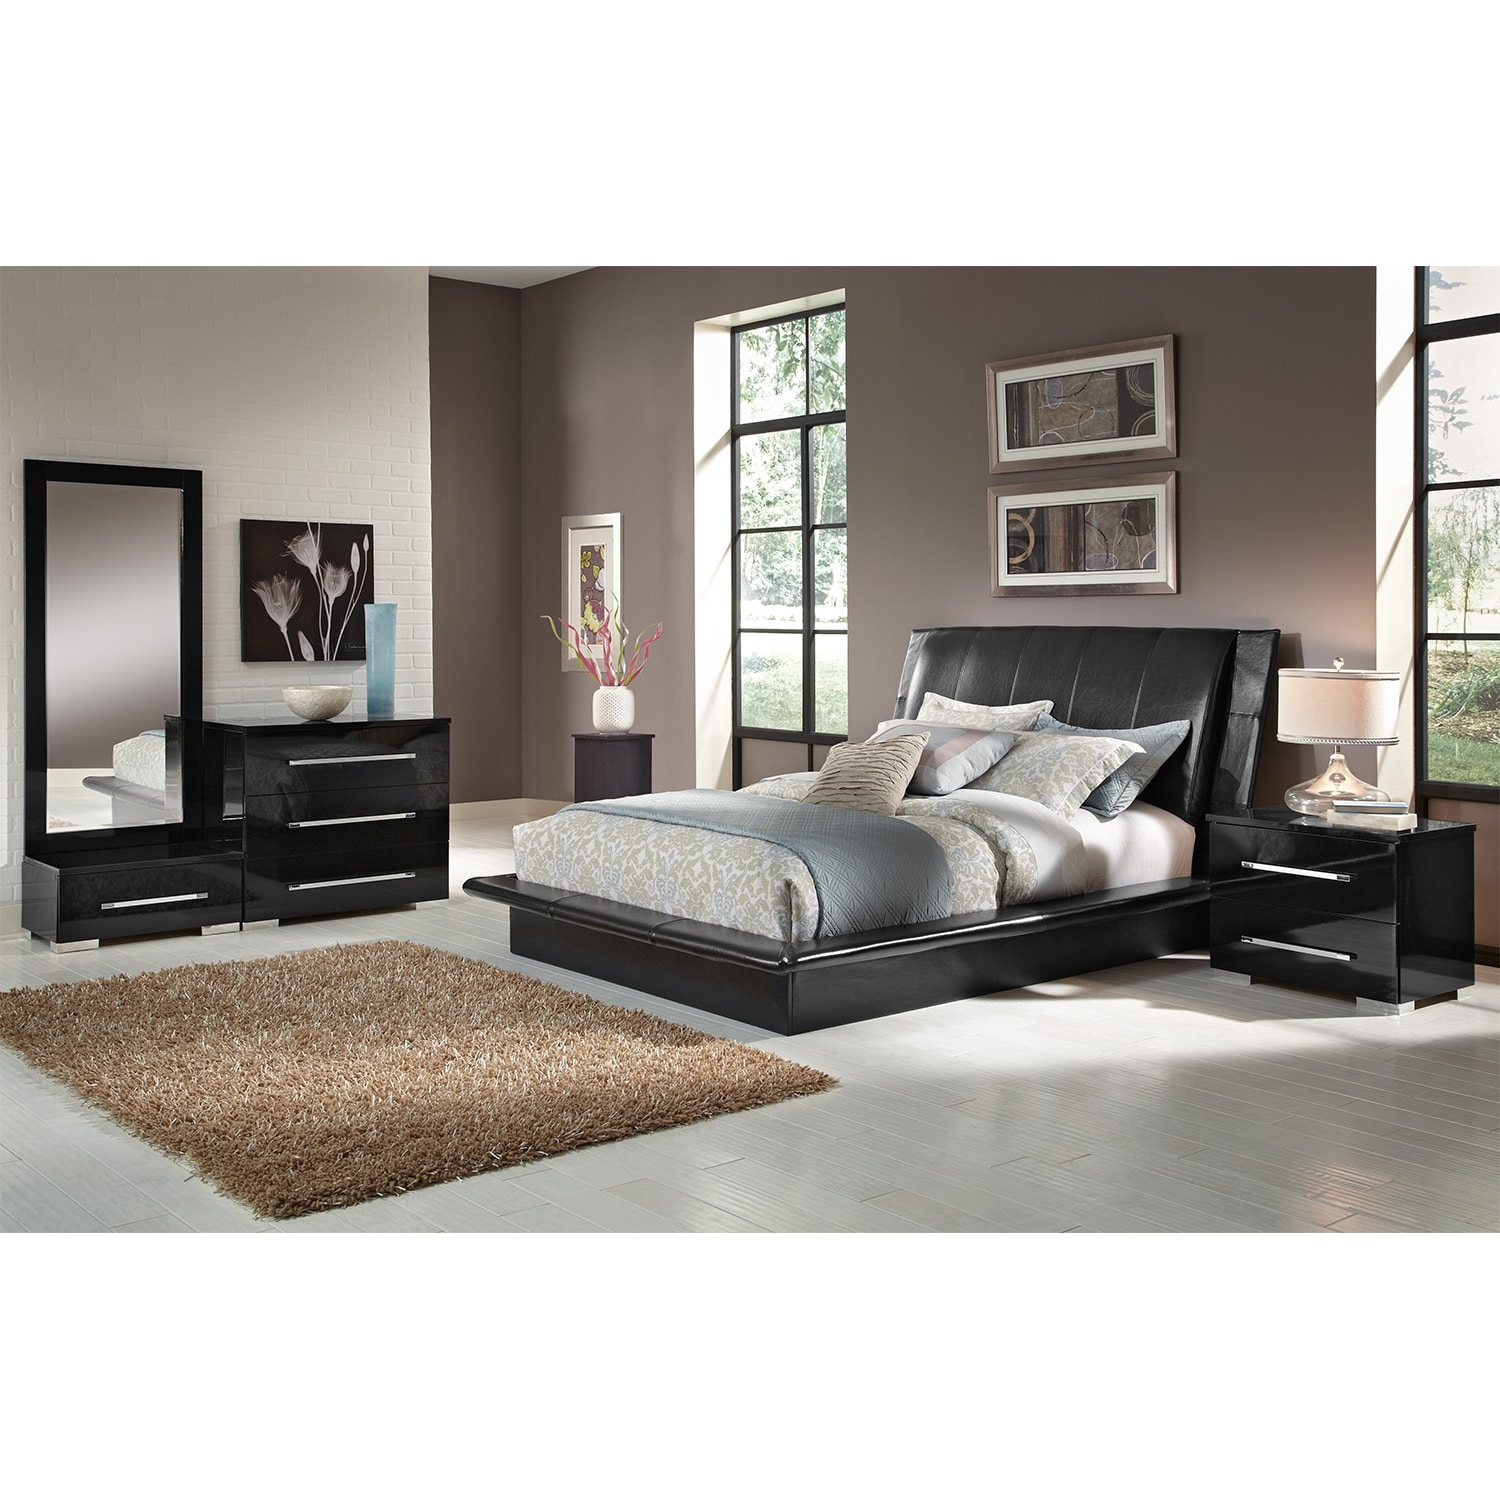 bedroom furniture dimora 6 piece queen upholstered bedroom set